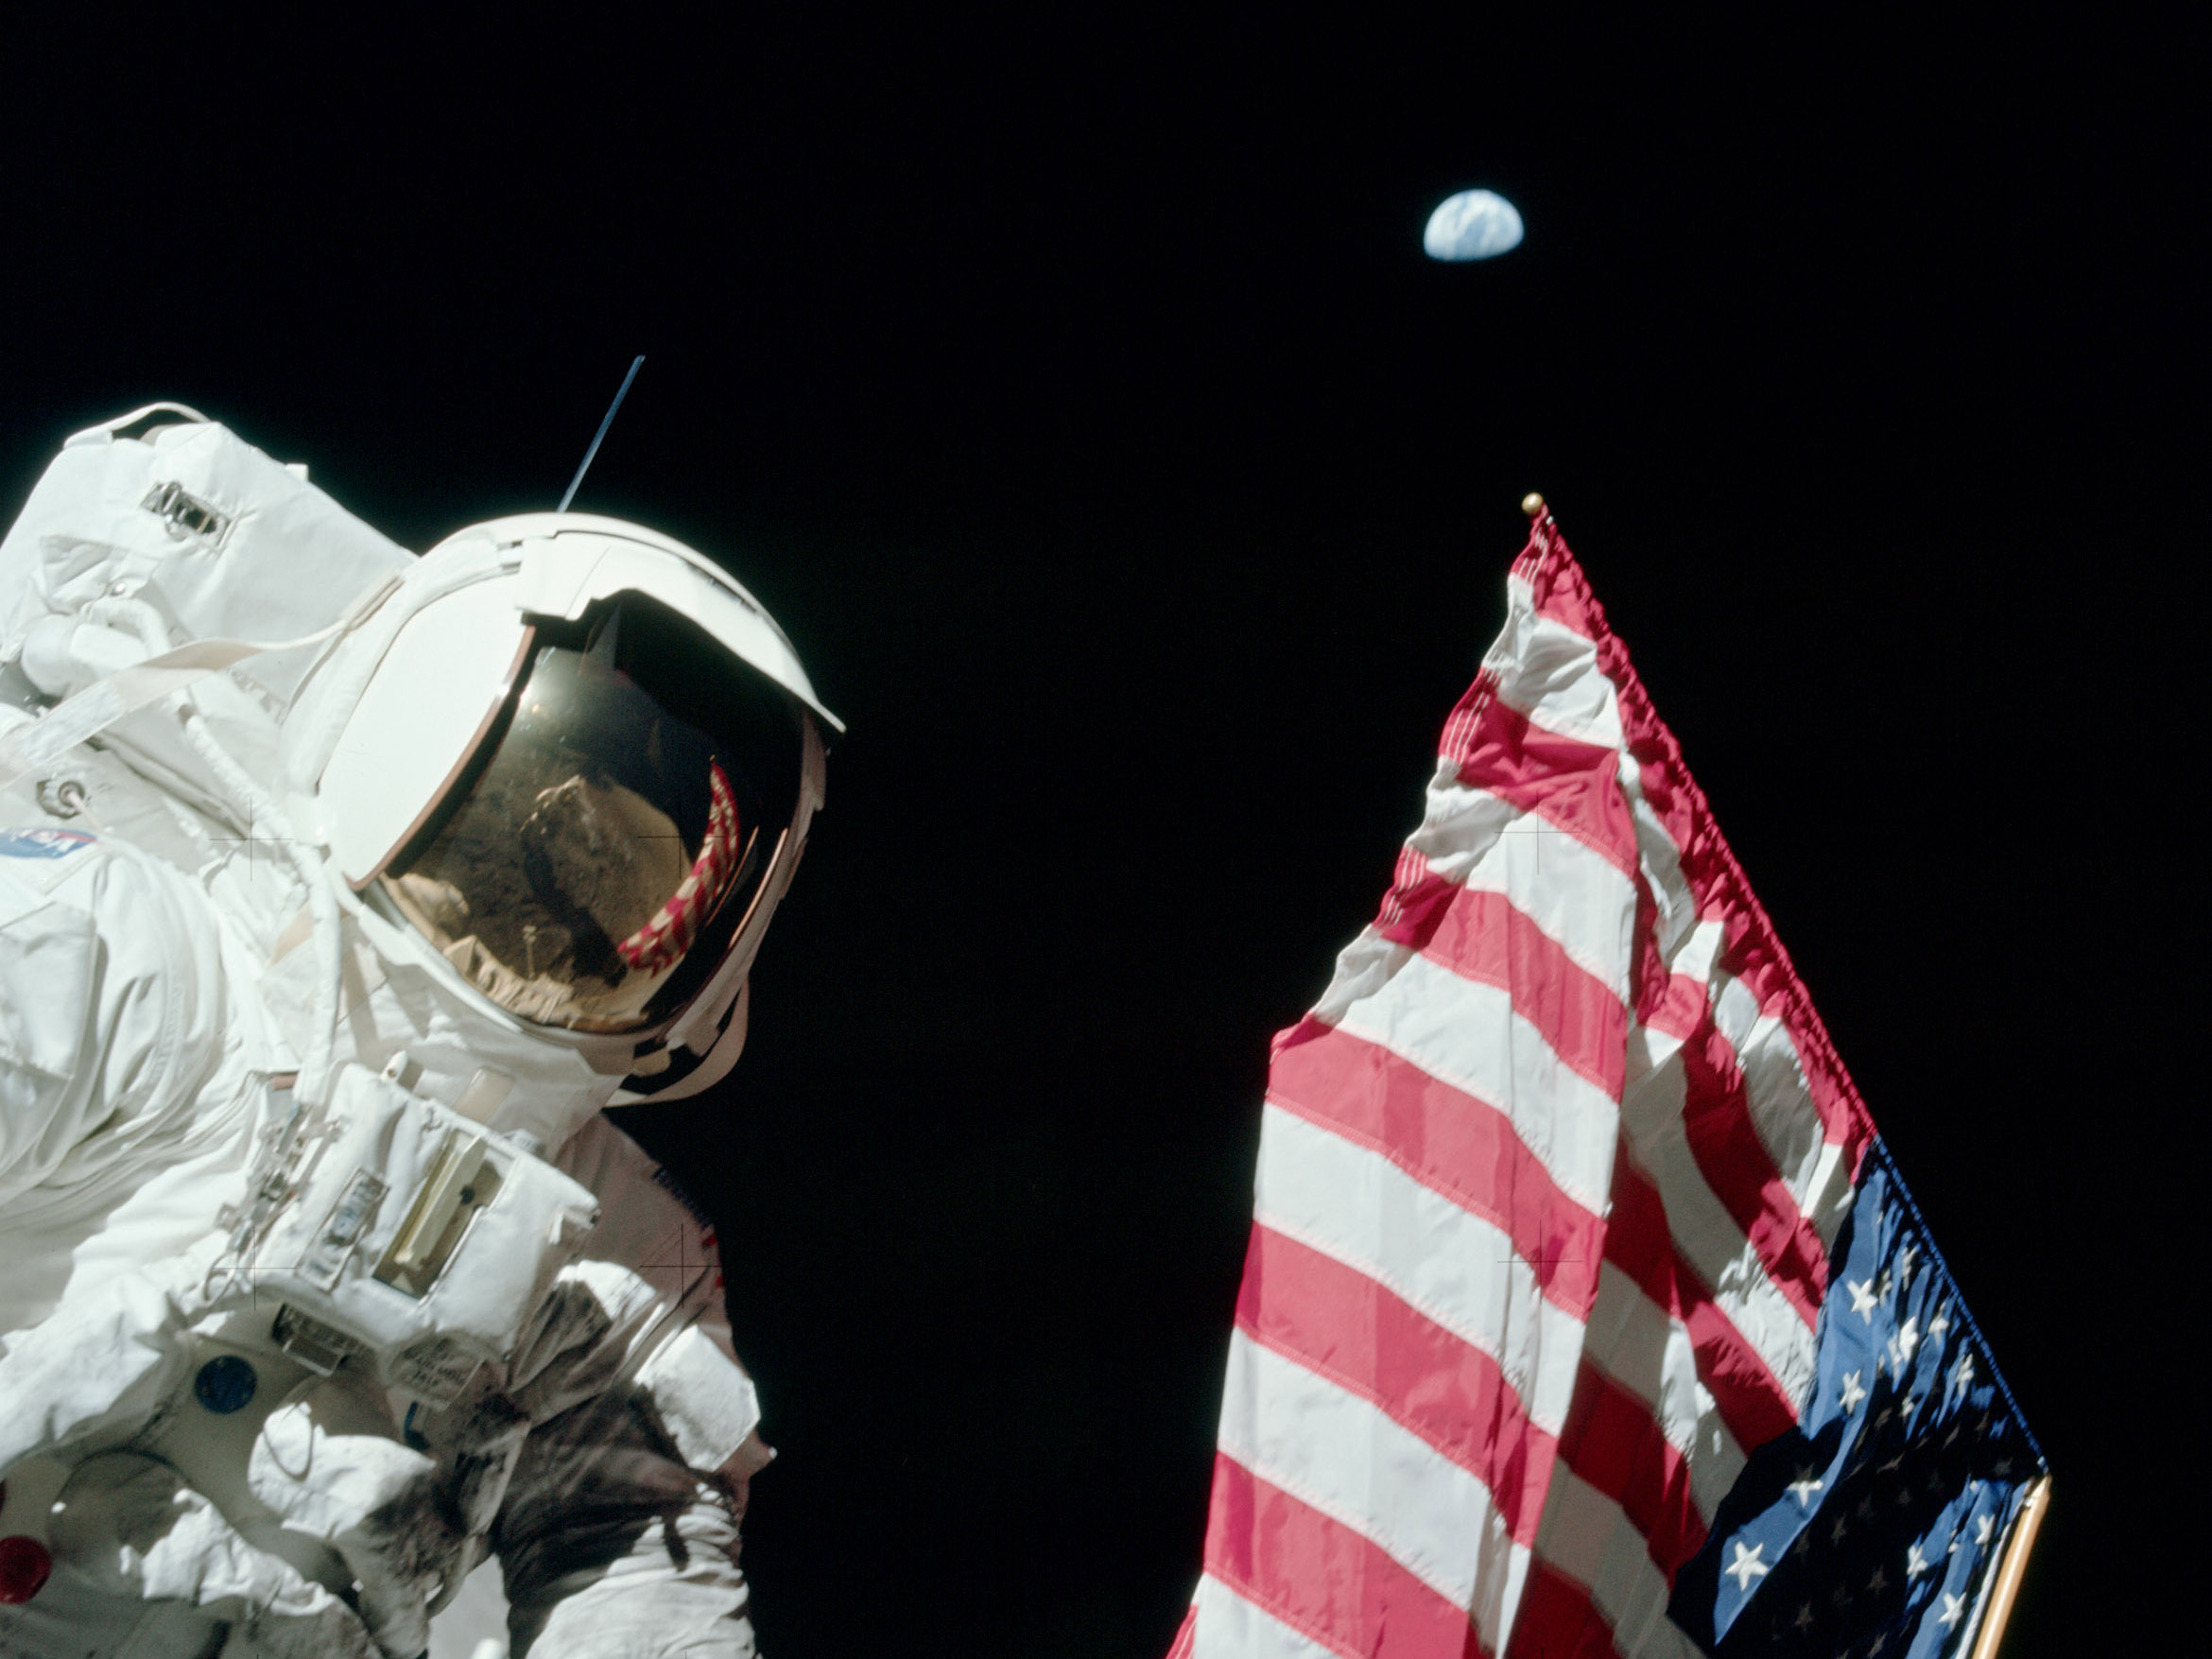 Apollo 17 astronaut Jack Schmitt with the U.S. flag and the Earth in the sky.